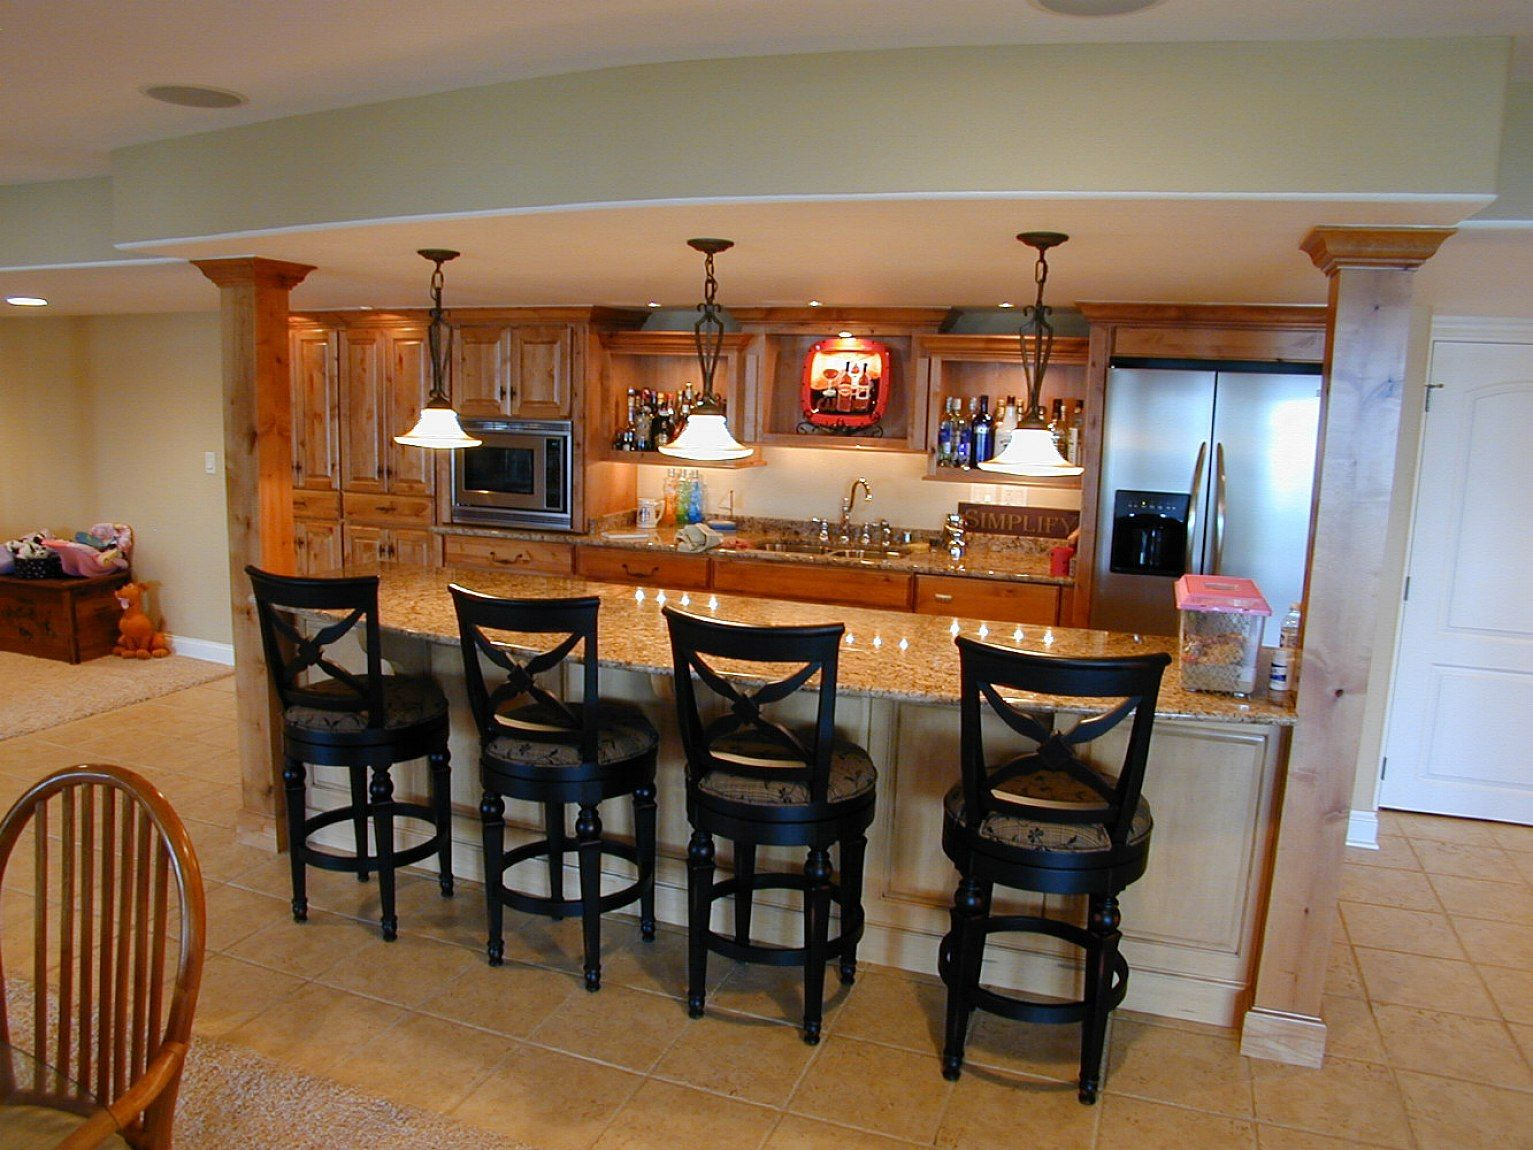 Finished Basement Bars Finished Basement Ideas  Basement Finishing With Mini Bar Design